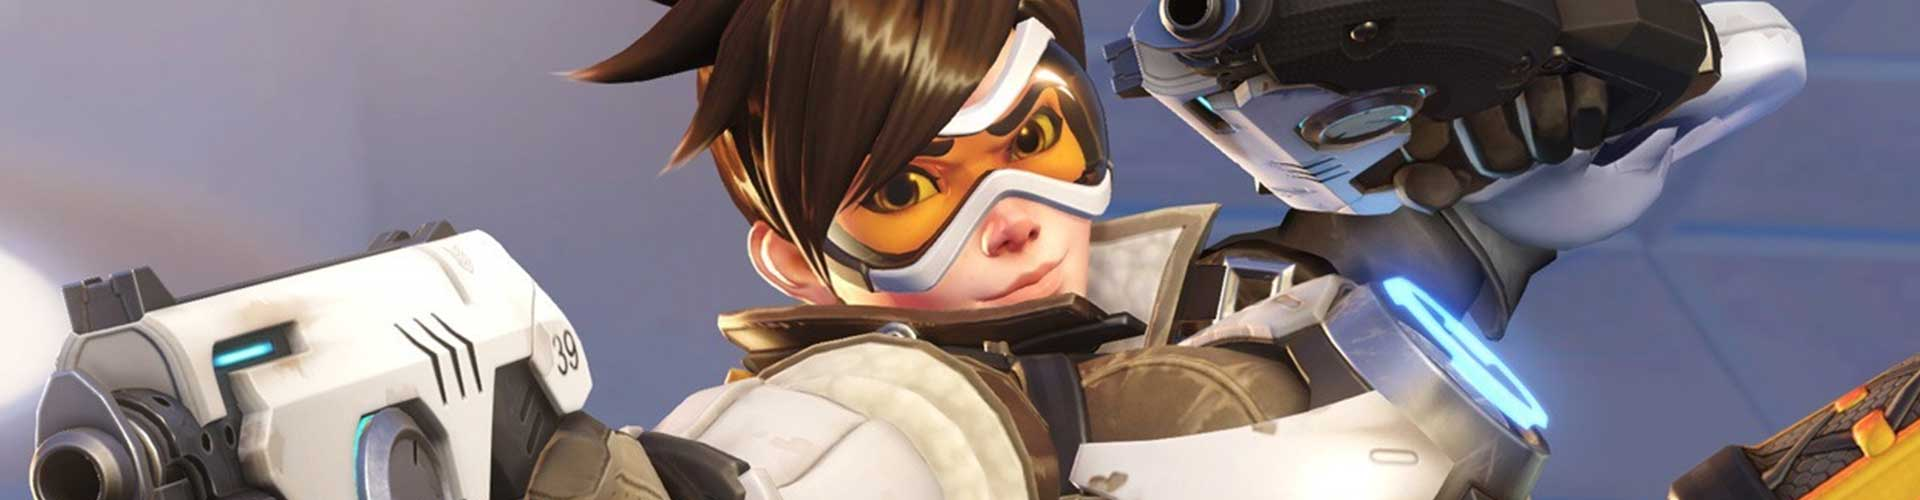 overwatch-tease-2202-header.jpg